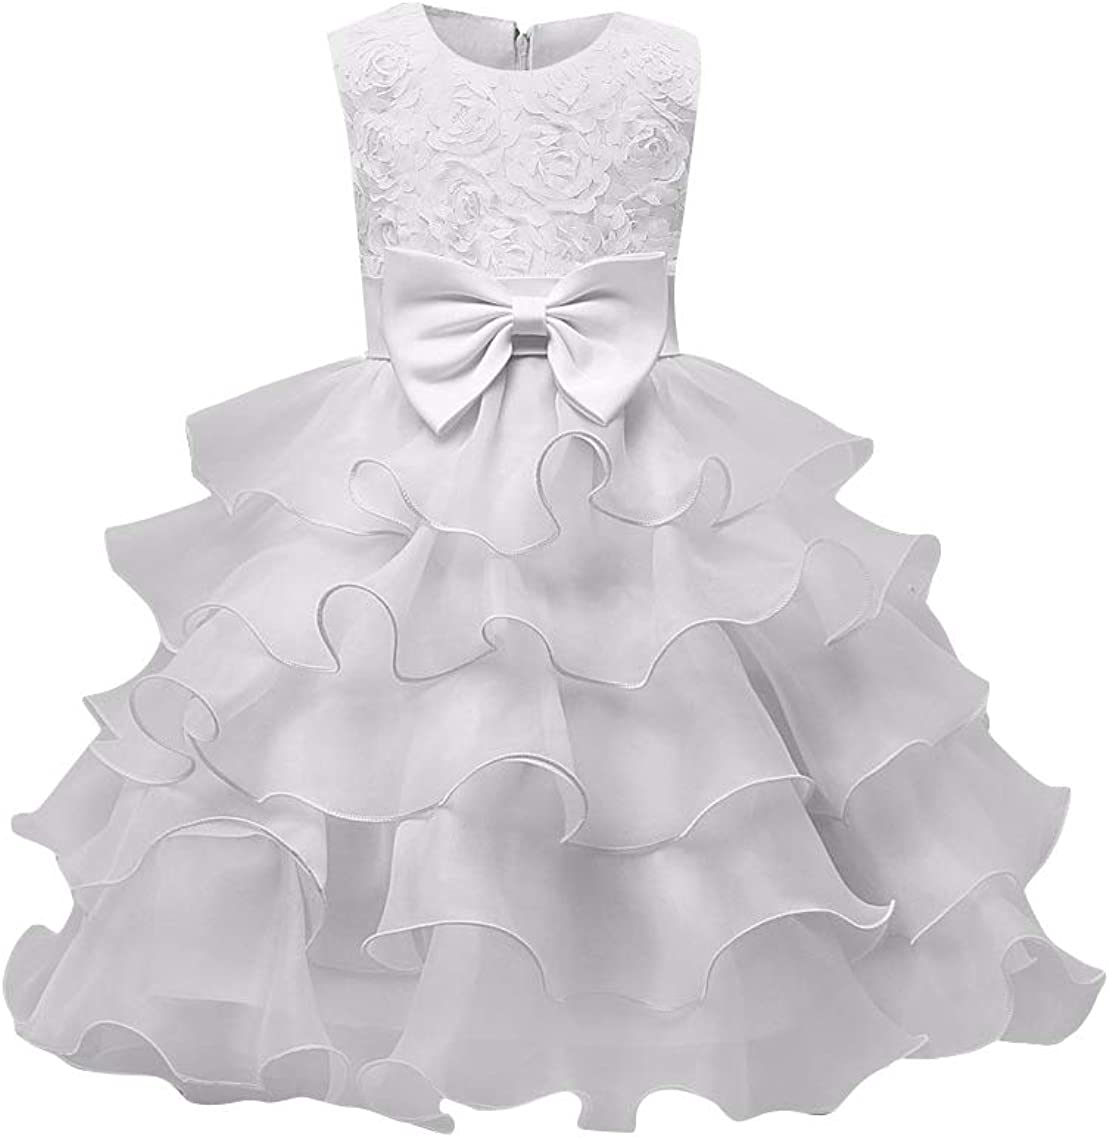 YMING Girl Ball Gown Sleeveless Ruffle Lace Pageant Wedding Party Dresses Tulle Tiered Princess Tutu Gowns